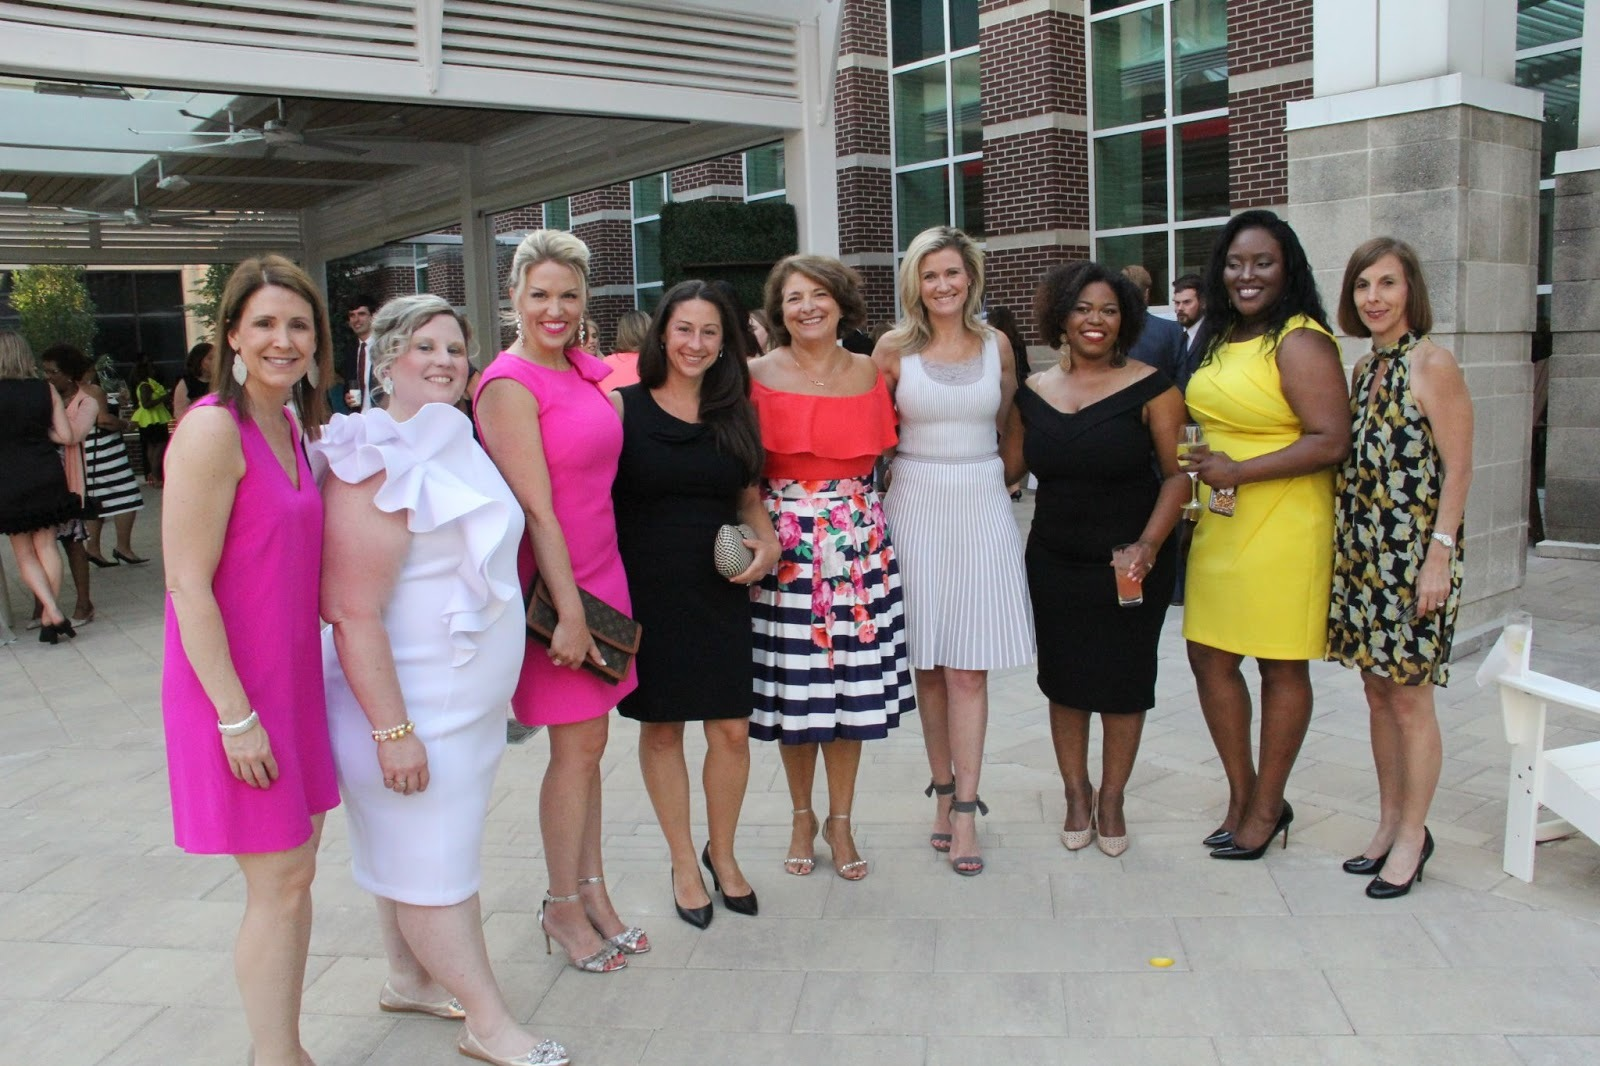 Attendees at 2019's Power of the Purse auction + fundraiser